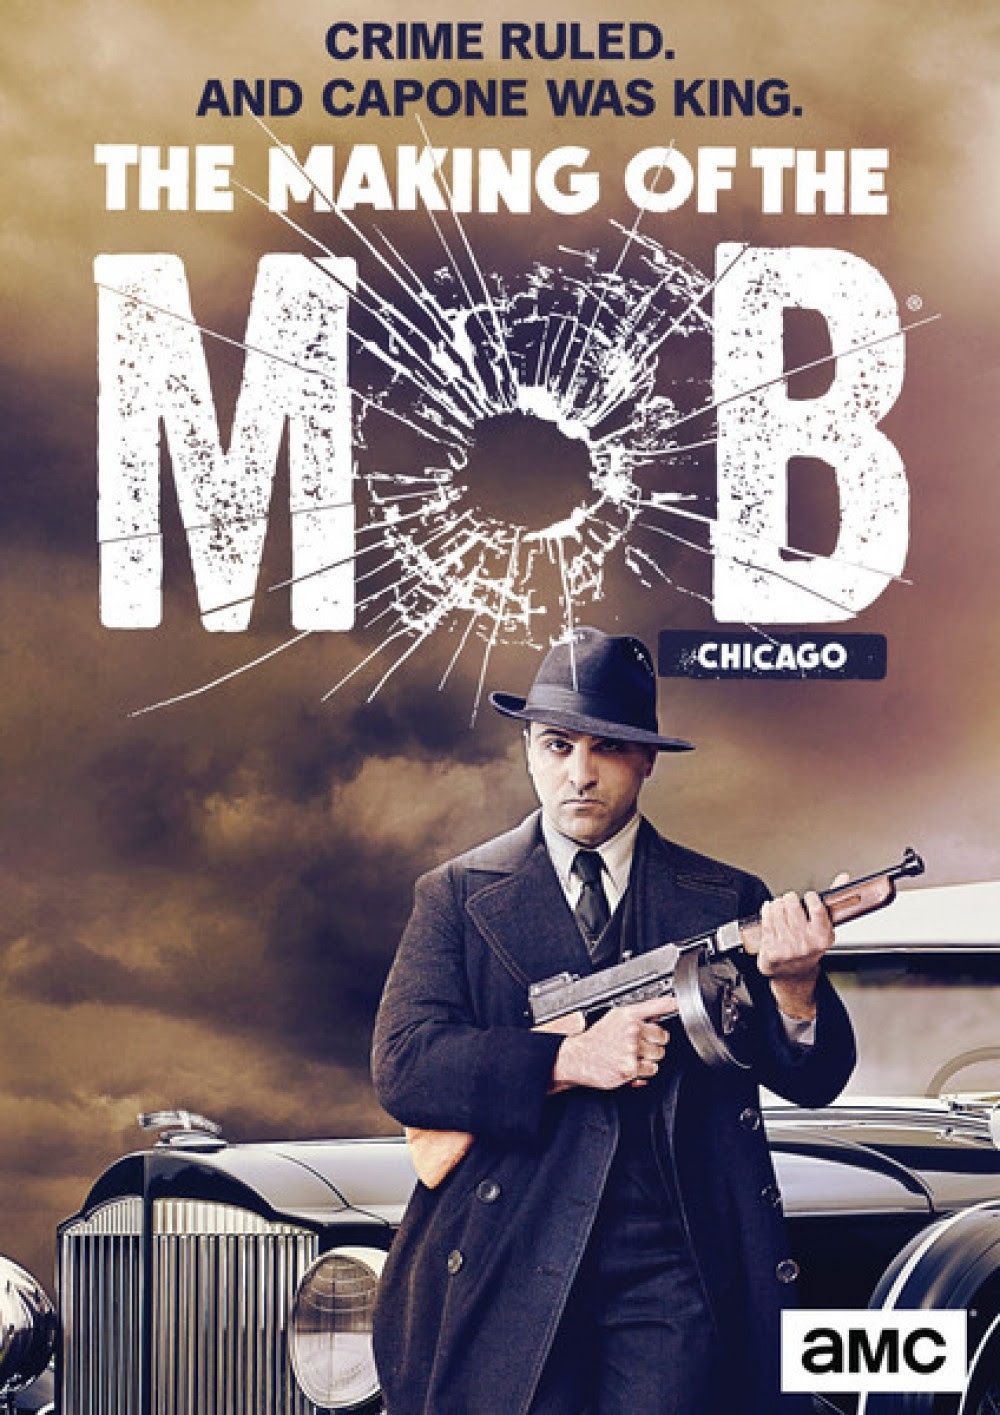 : https://jaderlundcasting.com/cmi/portfolio-item/making-of-the-mob-chicago